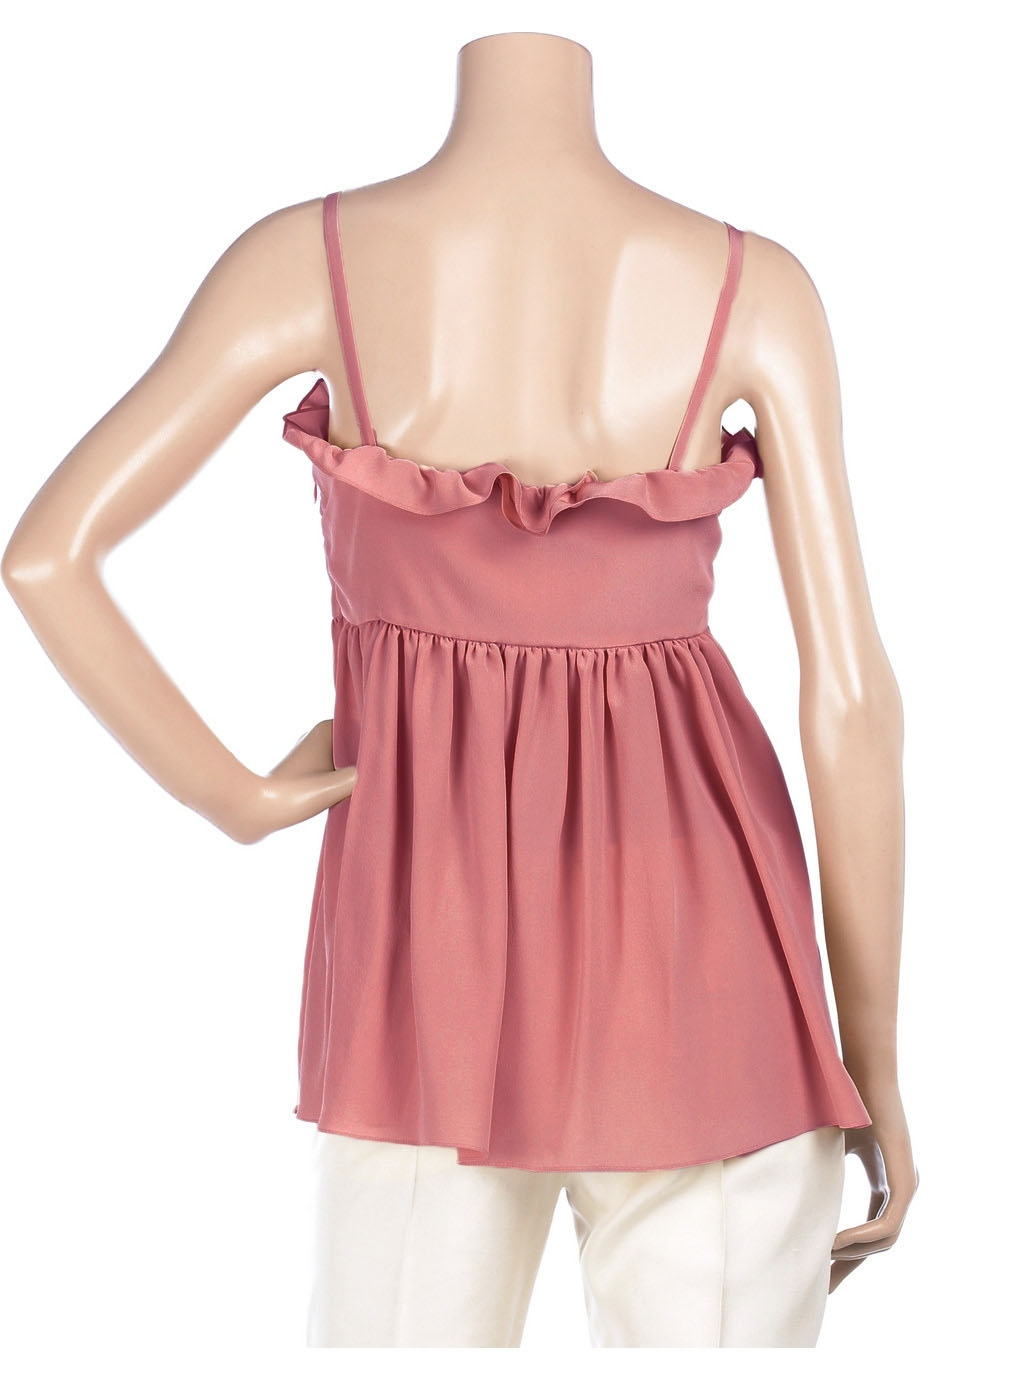 Louise Paris Chloe Pink Ruffle Silk Babydoll Top Retail